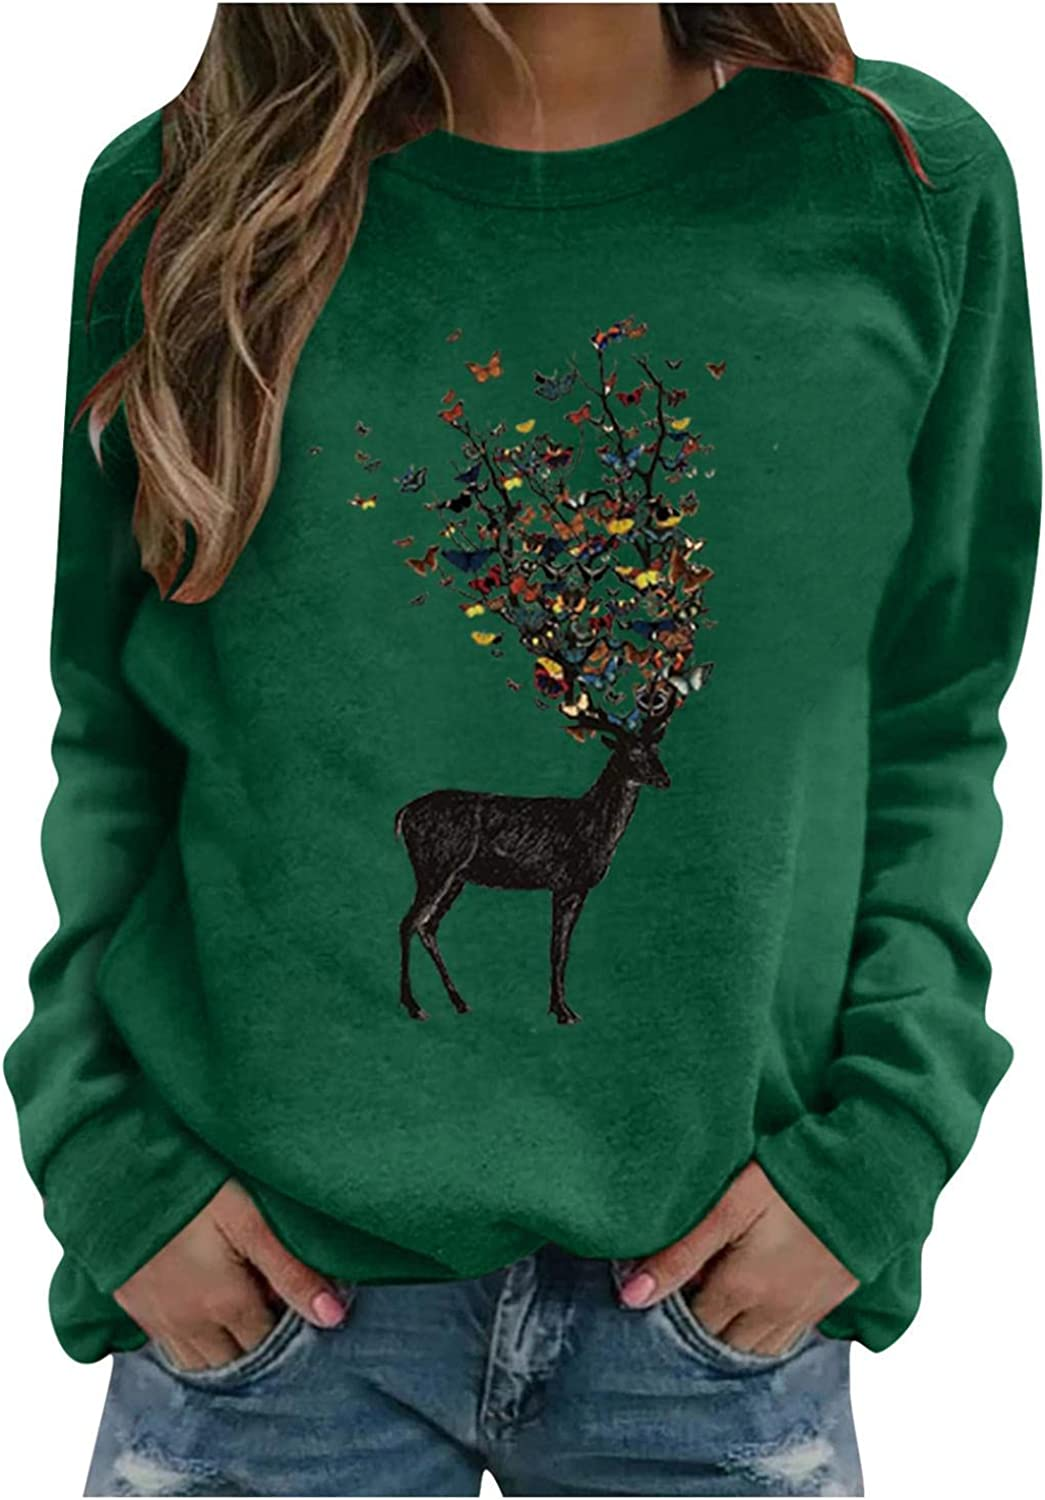 Toeava Long Sleeve Shirts for Women Casual Elk Butterfly Graphic Tee Shirts Crew Neck Sweatshirts Pullover Tunic Tops